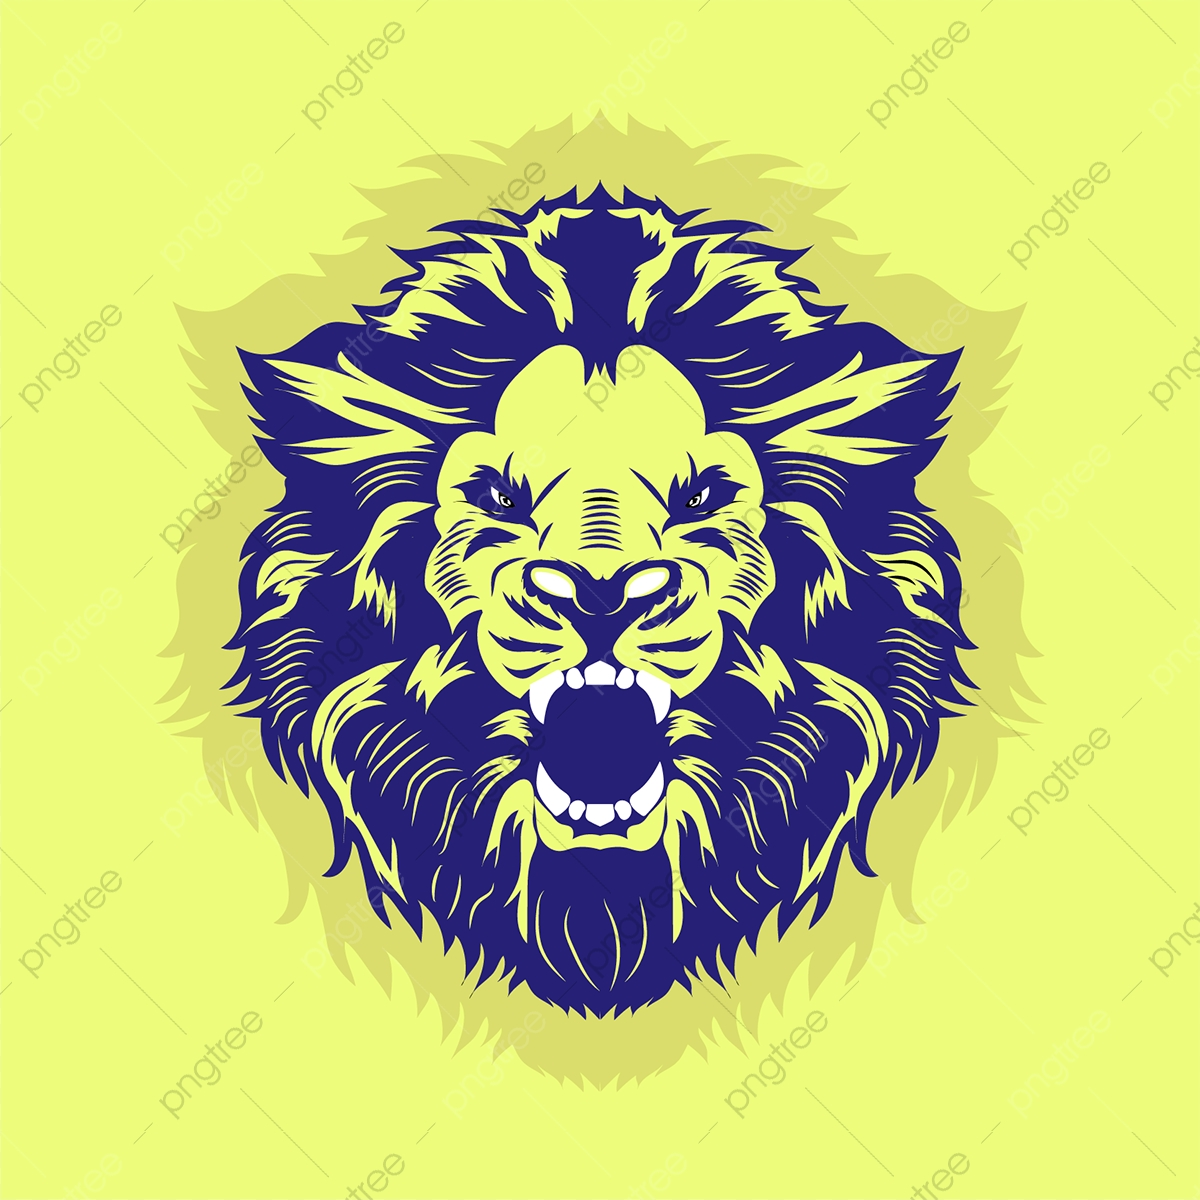 distro png images vector and psd files free download on pngtree https pngtree com freepng lineart blue lion king 5103402 html